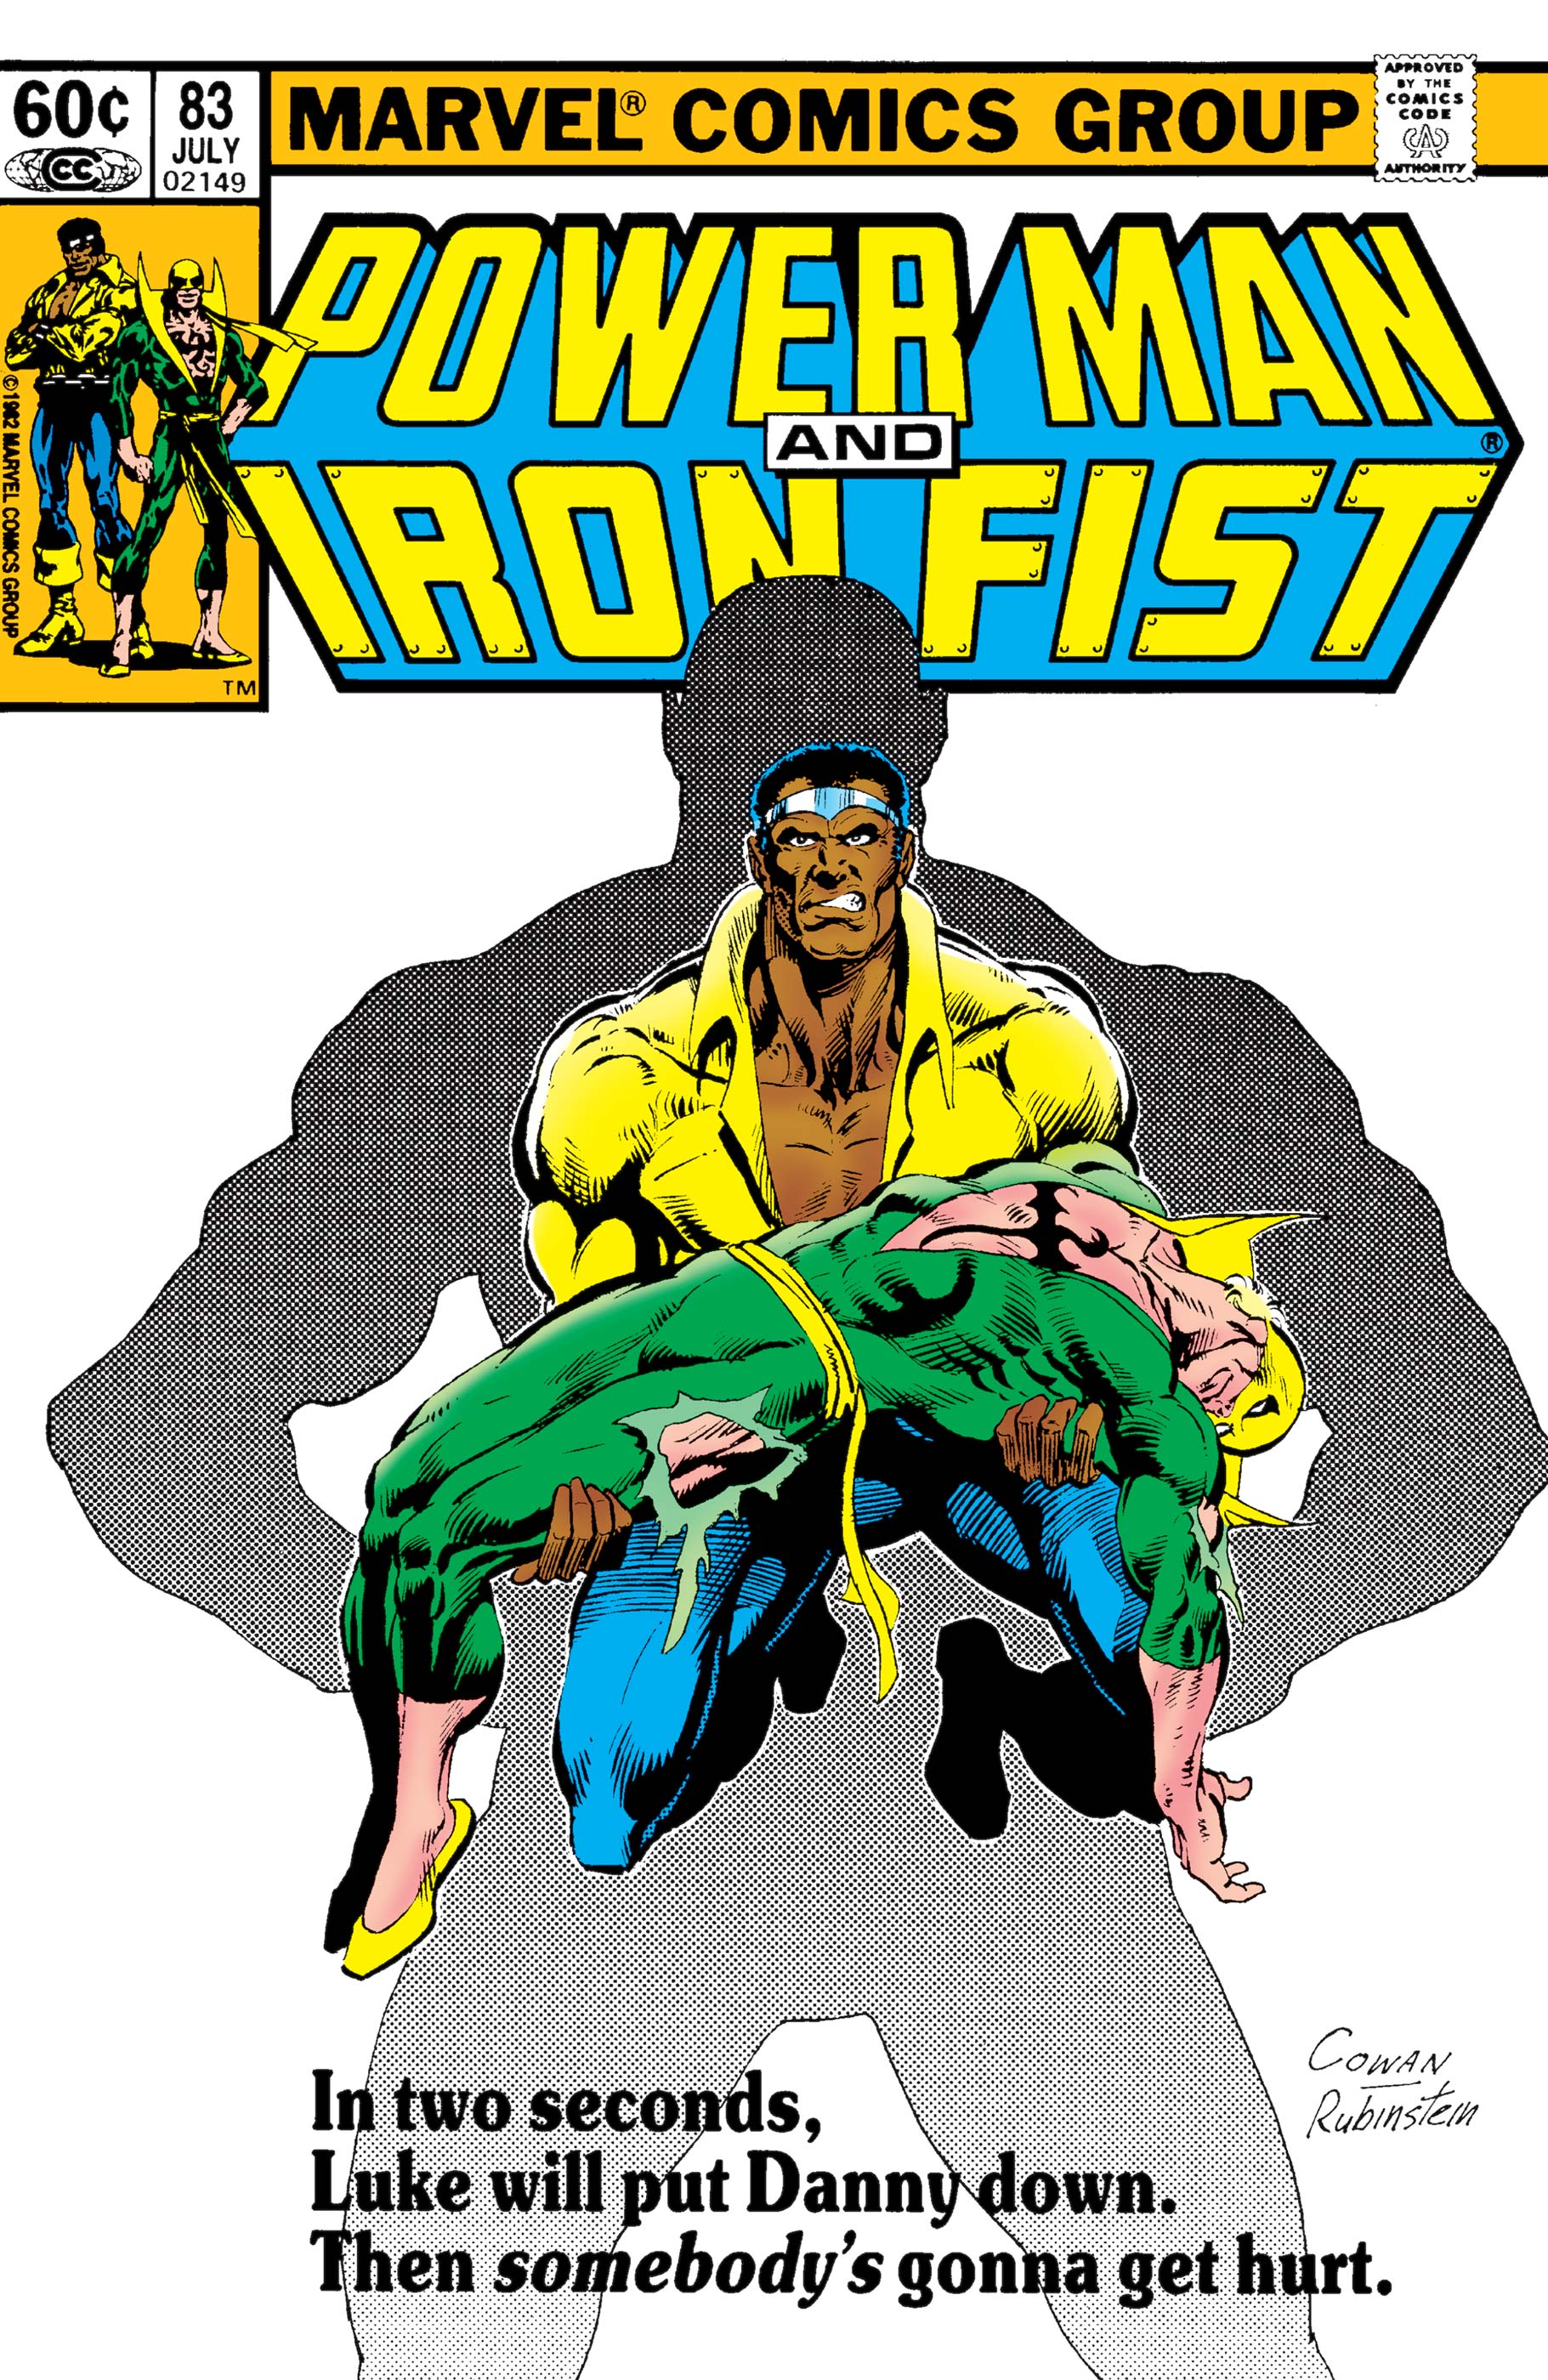 Power Man and Iron Fist (1978) #83